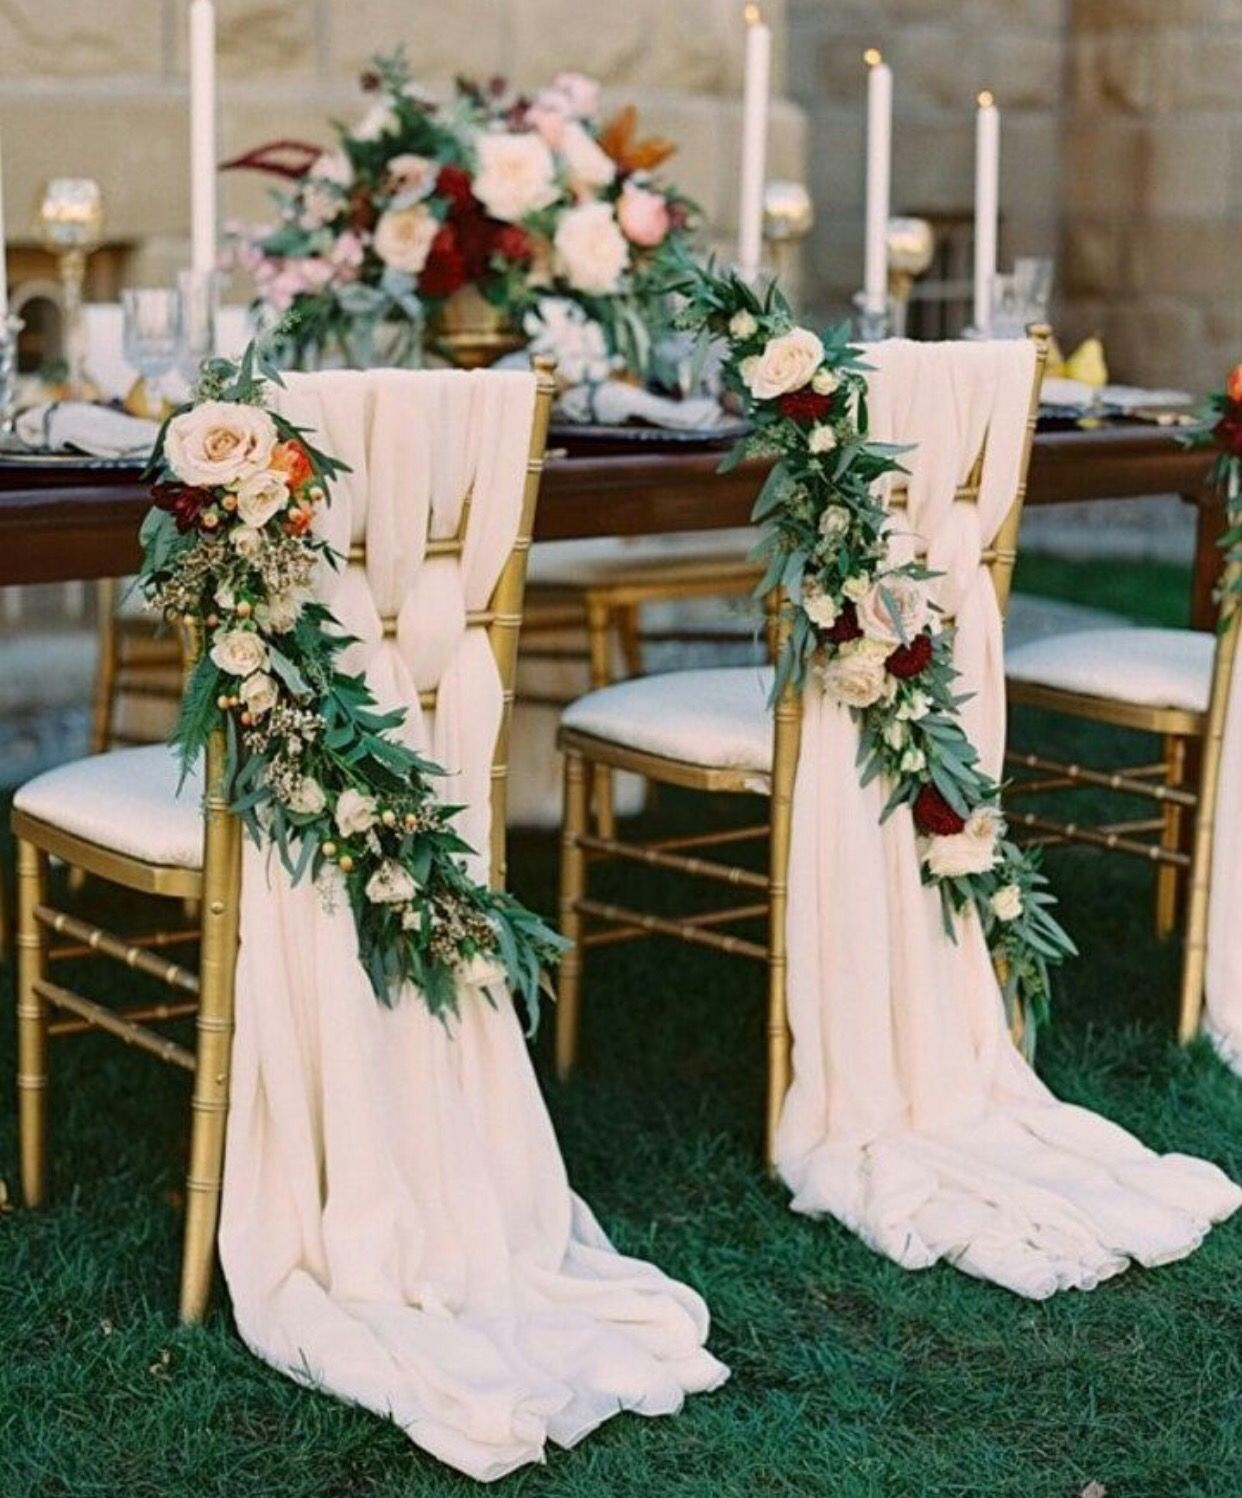 Decoracion Sillas Boda Bride And Groom Chairs Bodas En 2019 Fiestas De Boda